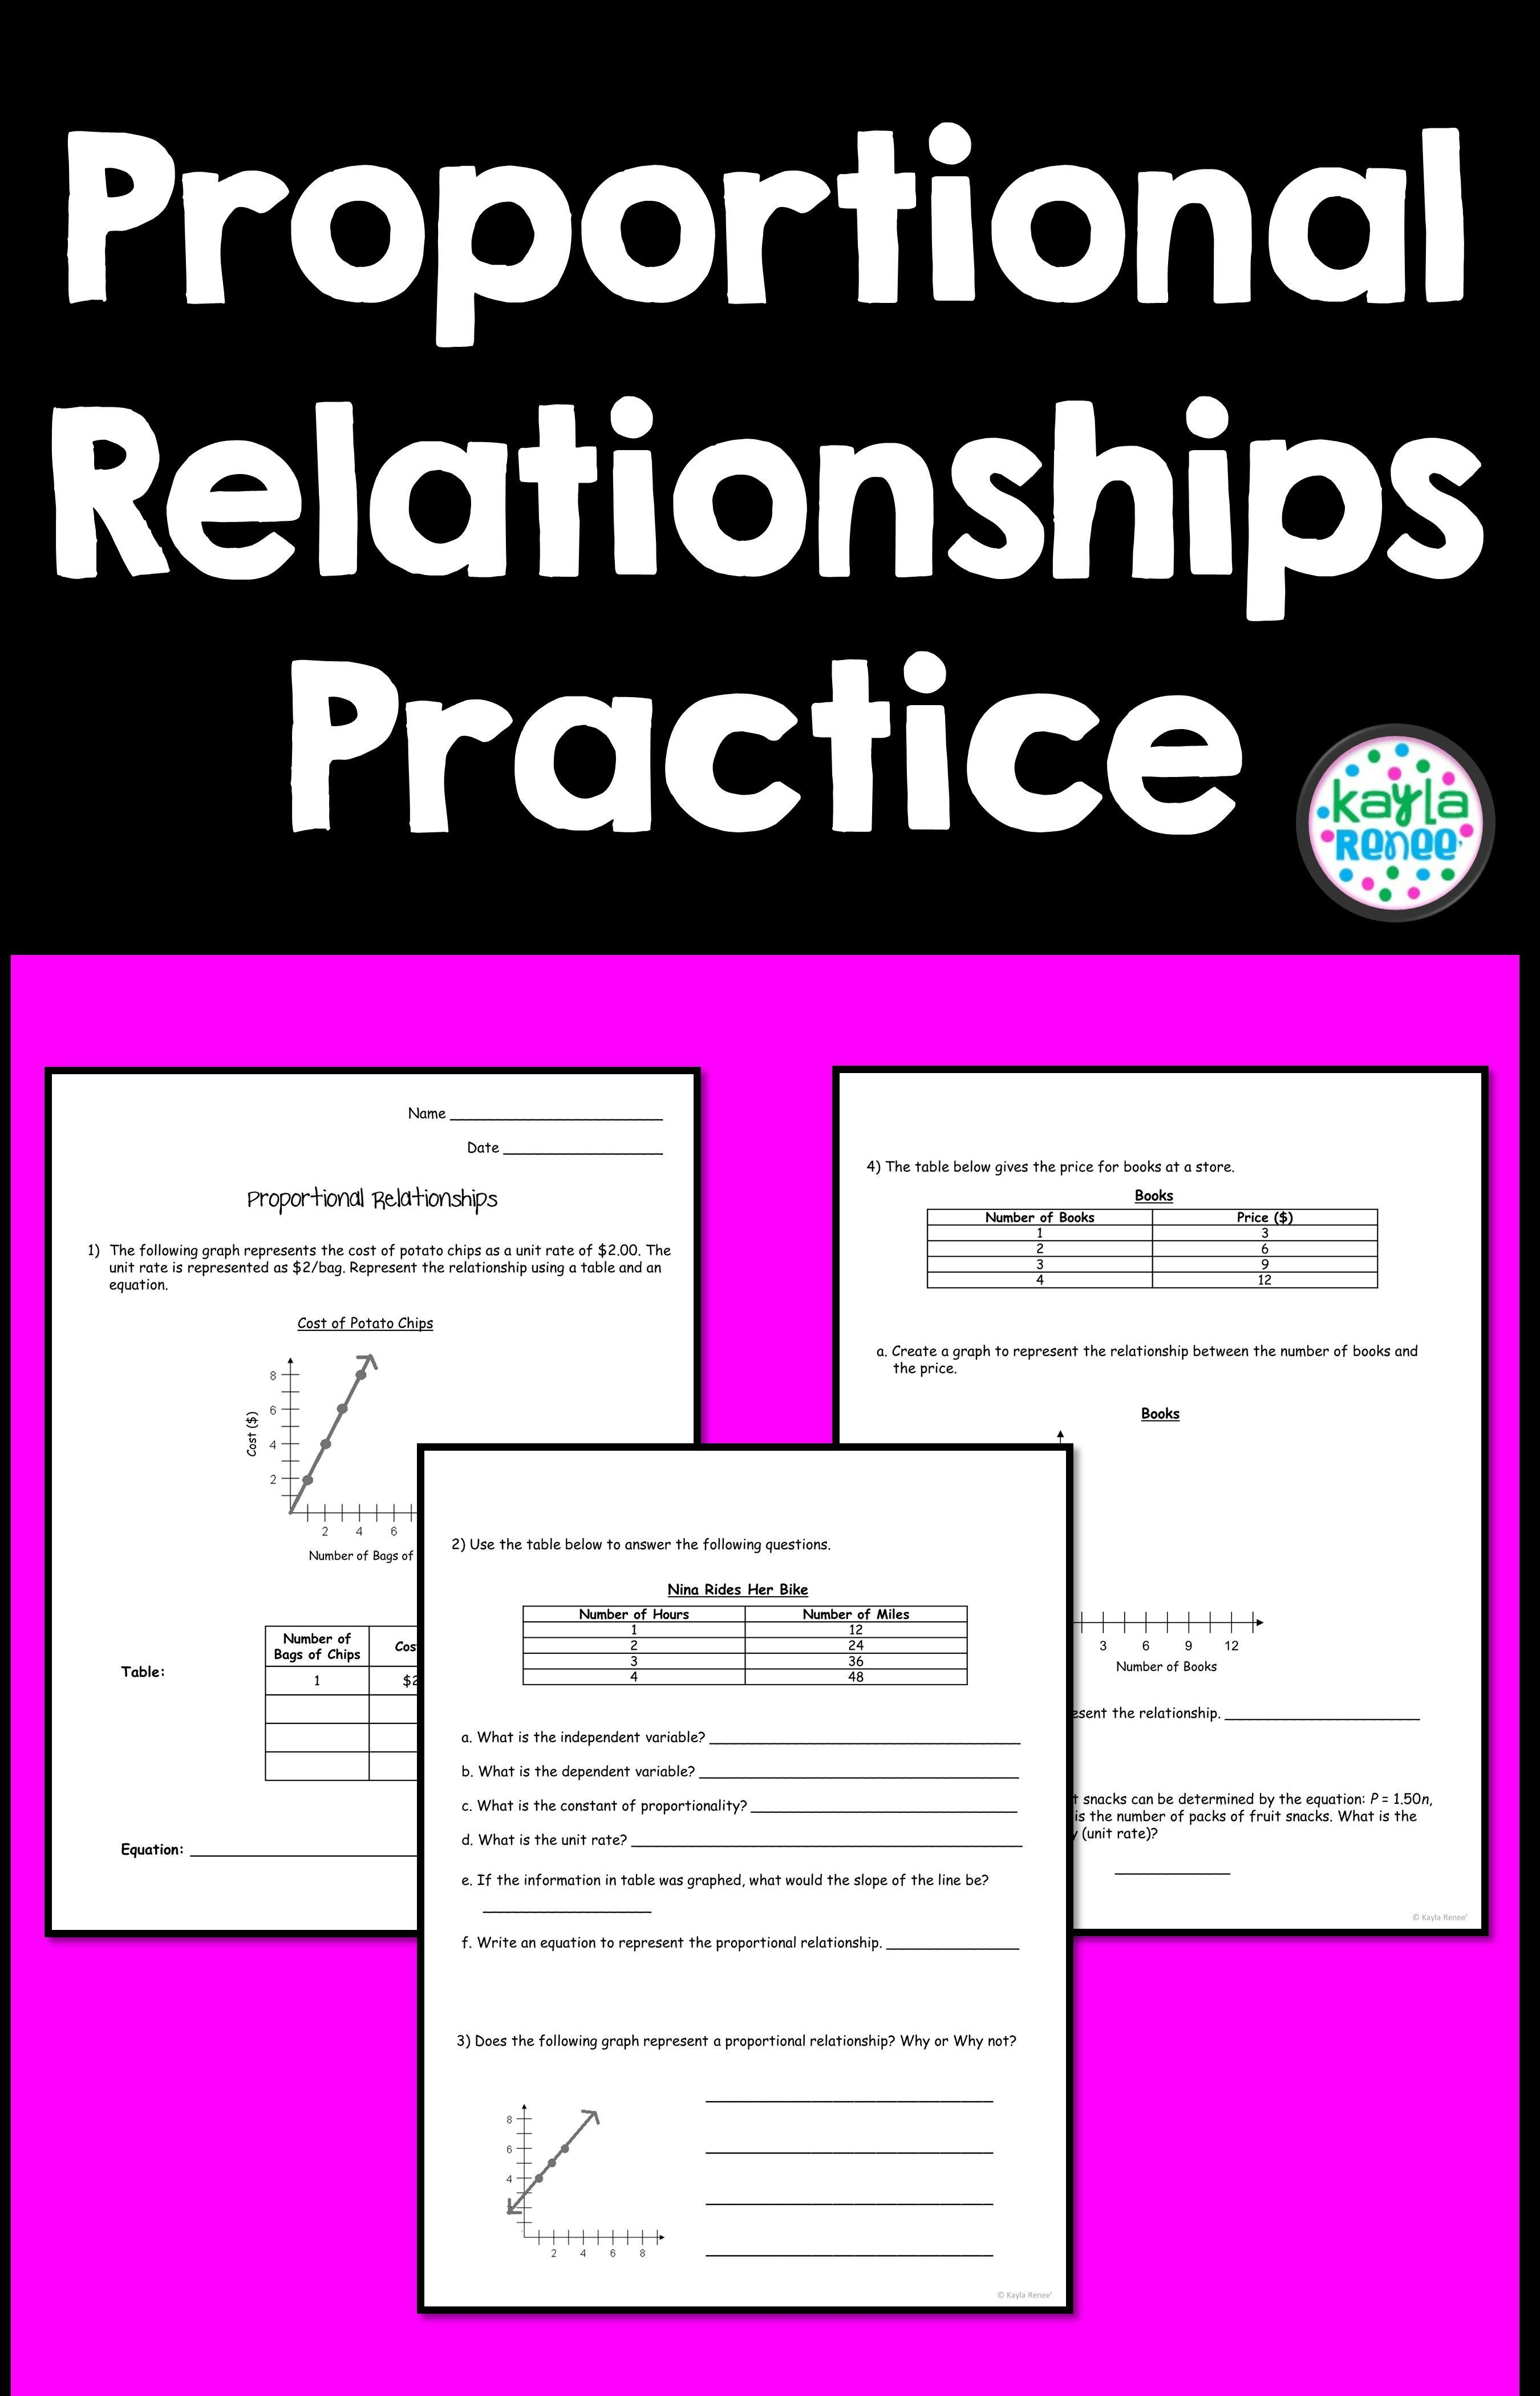 Independent practice math worksheet answers ideas